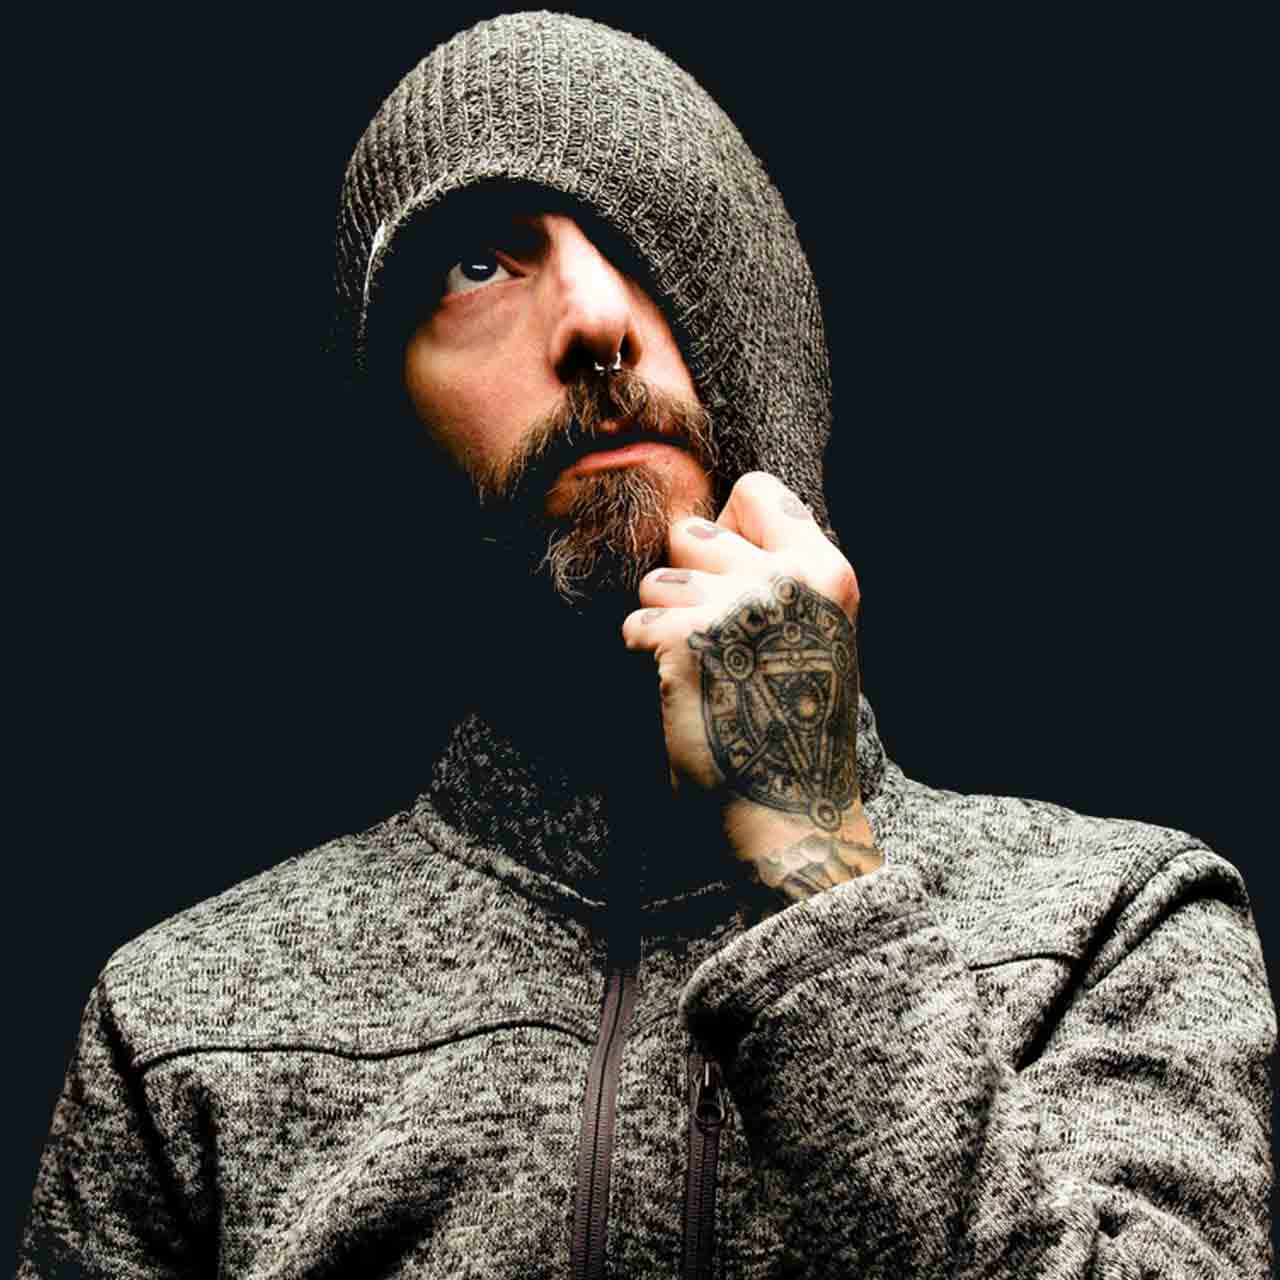 man-in-gray-knit-cap-and-gray-sweater-3829998